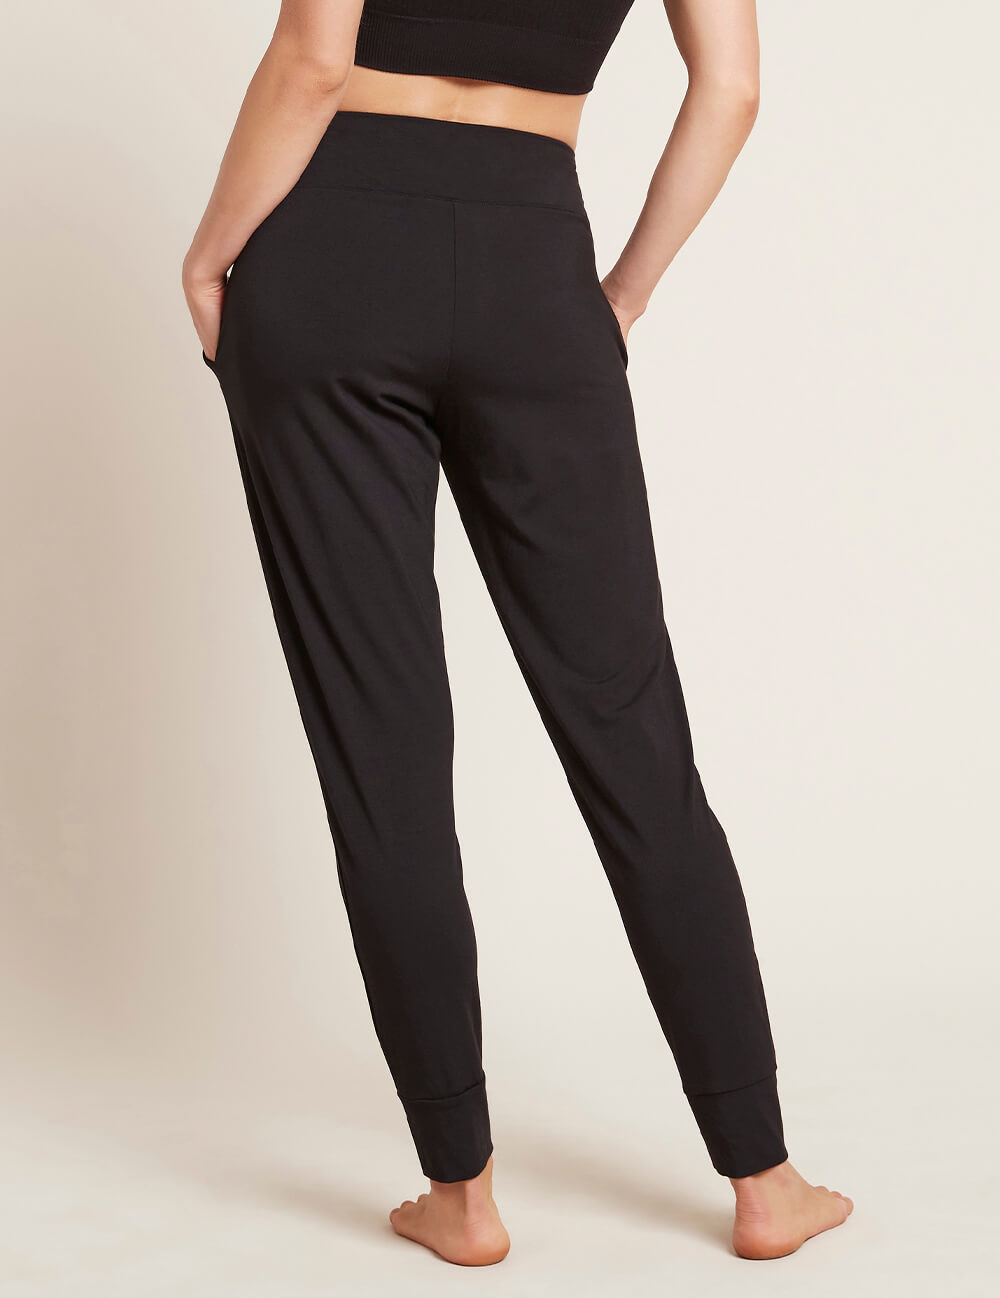 Downtime Lounge Pants